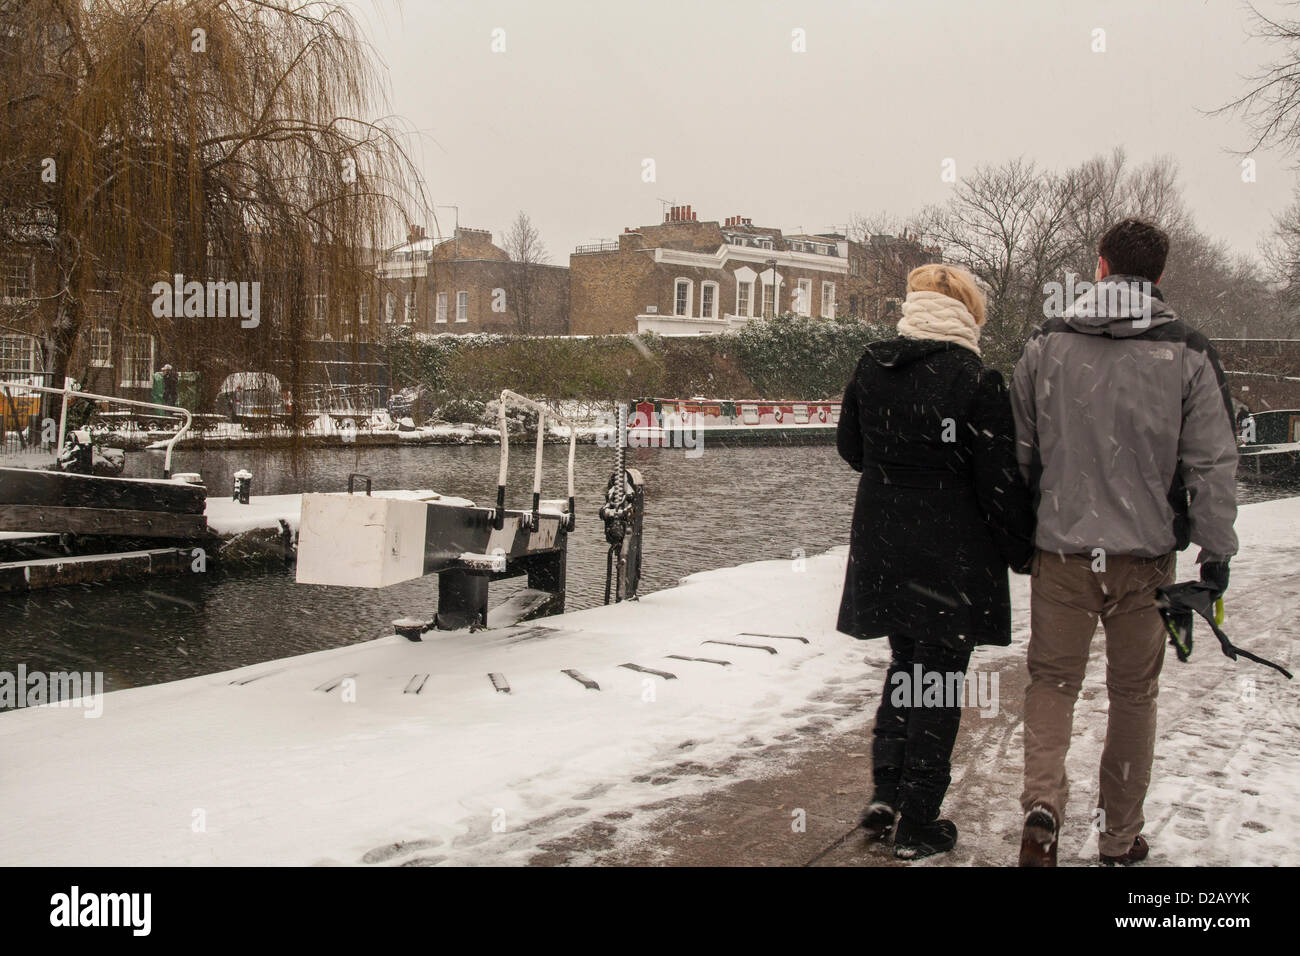 London, UK. 18th January 2013. Couple stroll along Regent's Canal, Central London, as snow falls across the - Stock Image